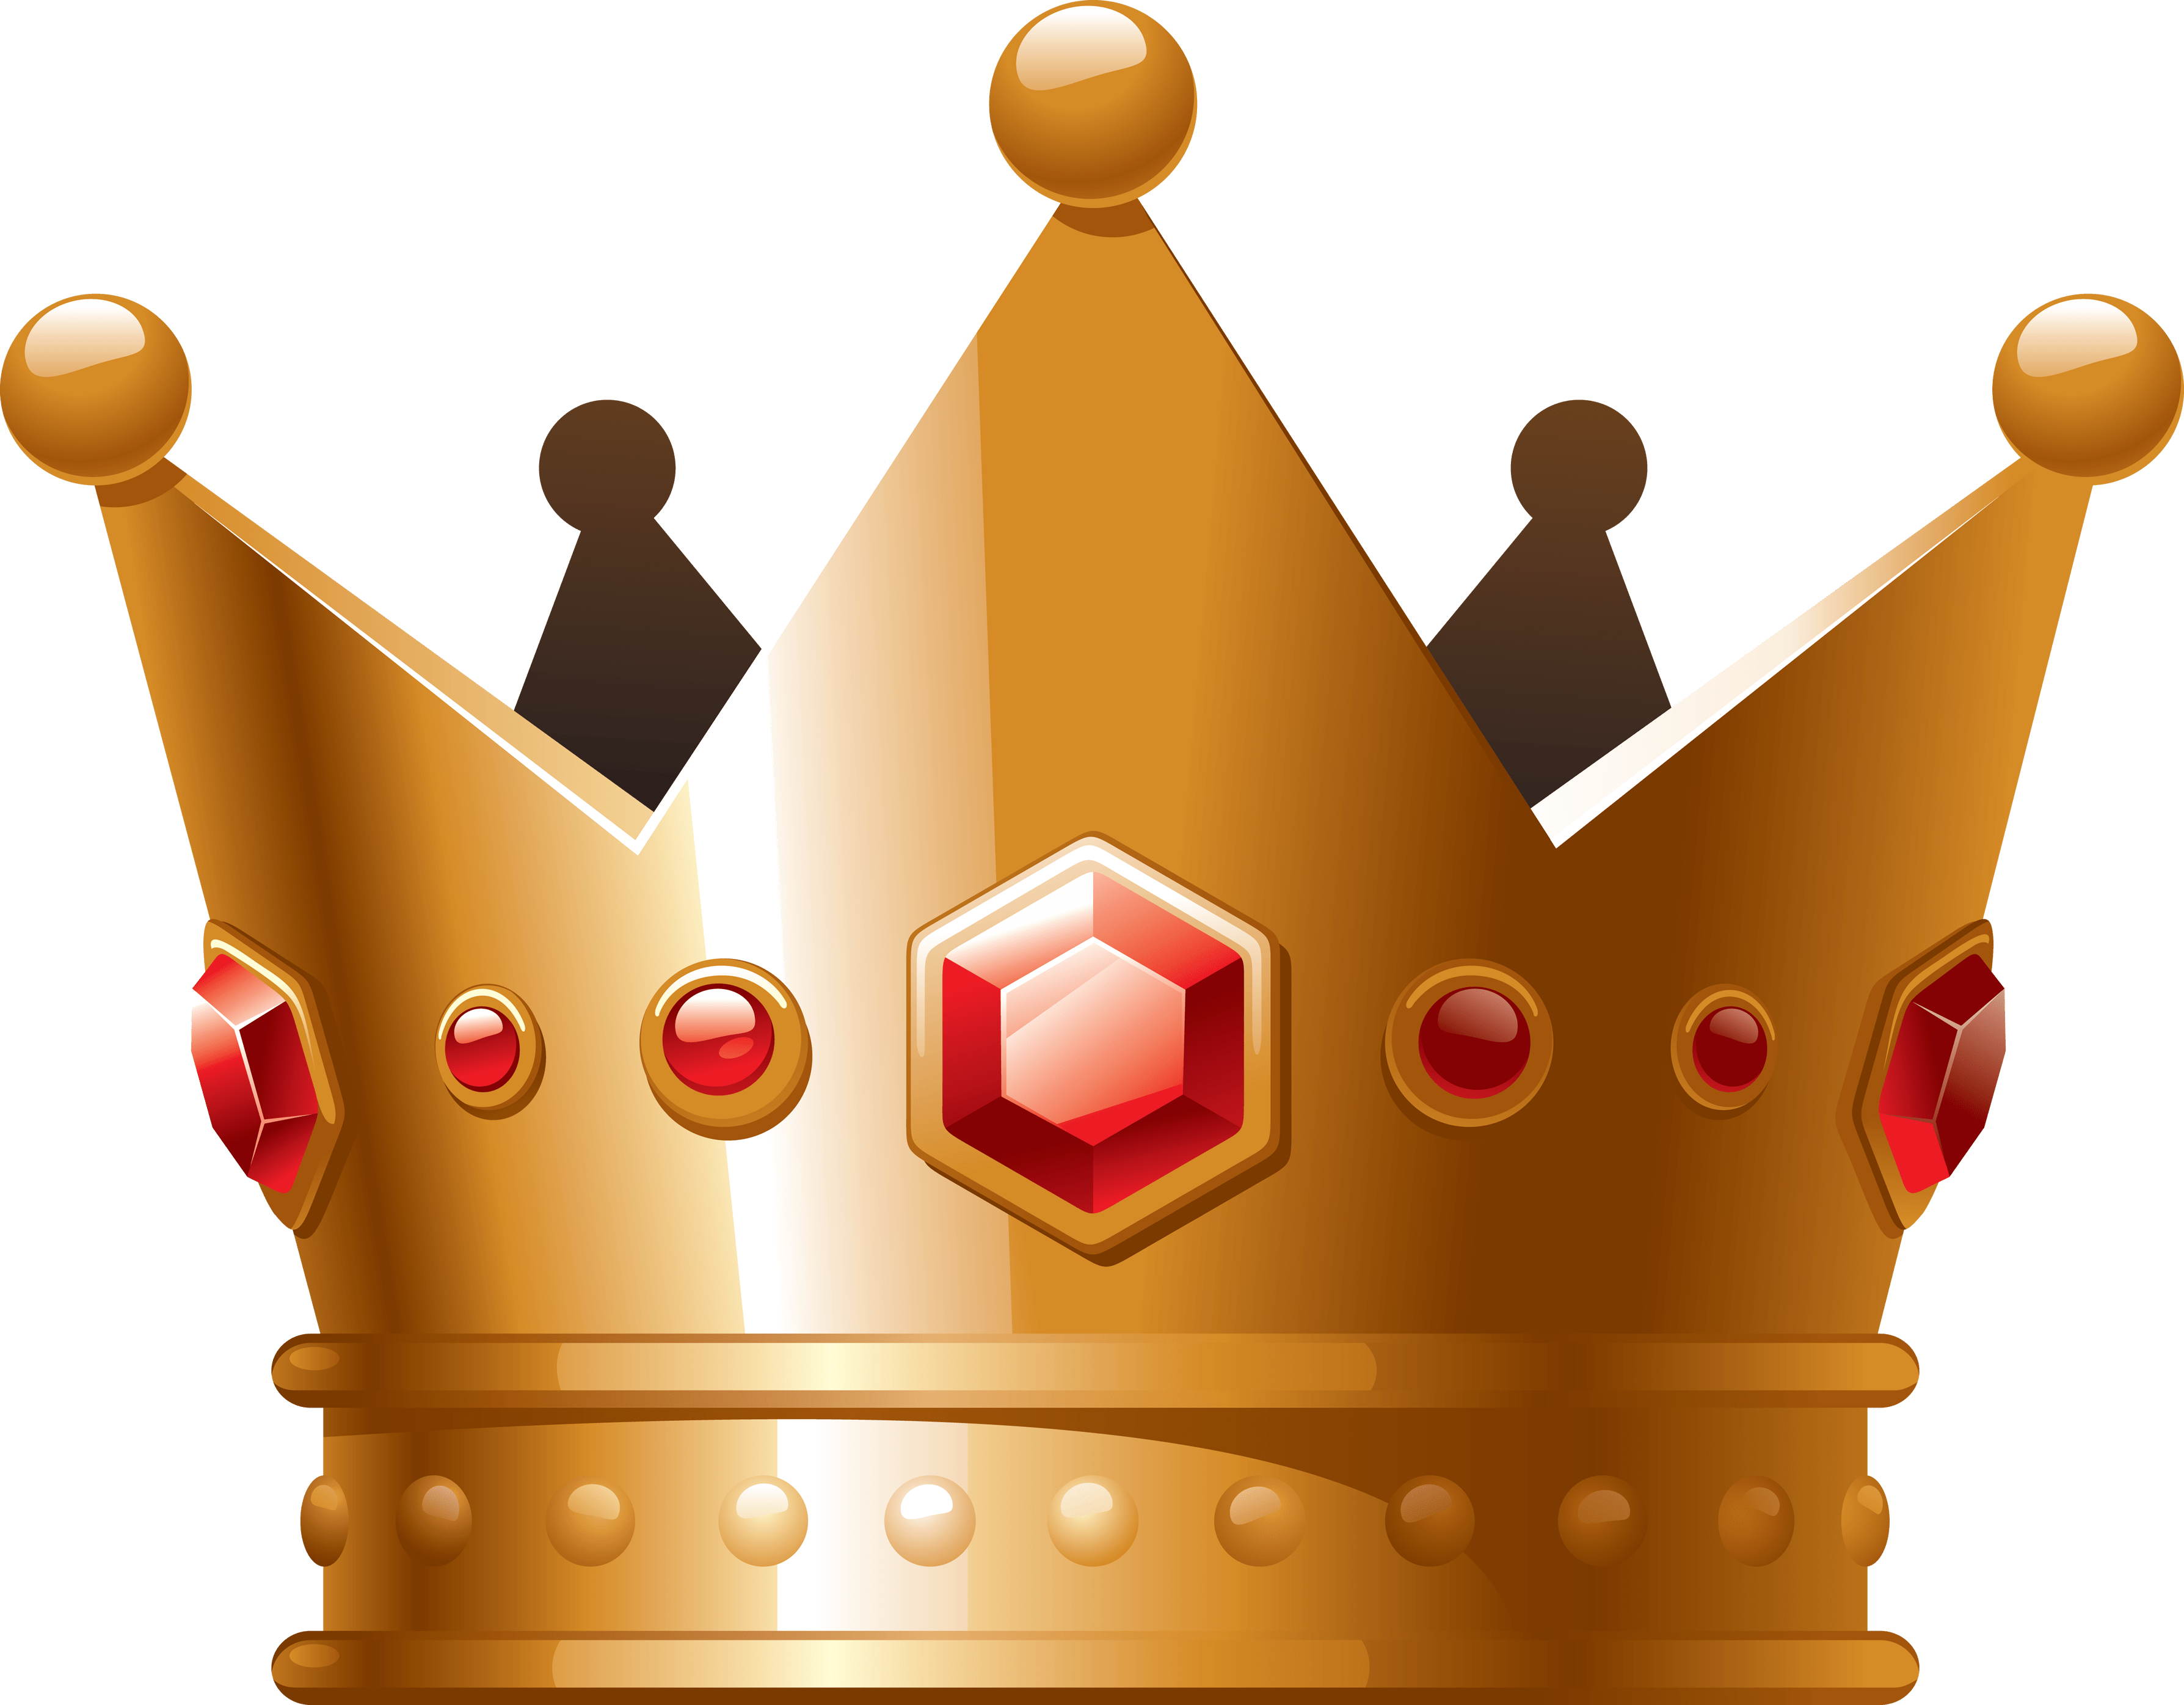 Crown cartoon clipart clipart royalty free library Crown Cartoon Clipart Transparent Png - AZPng clipart royalty free library